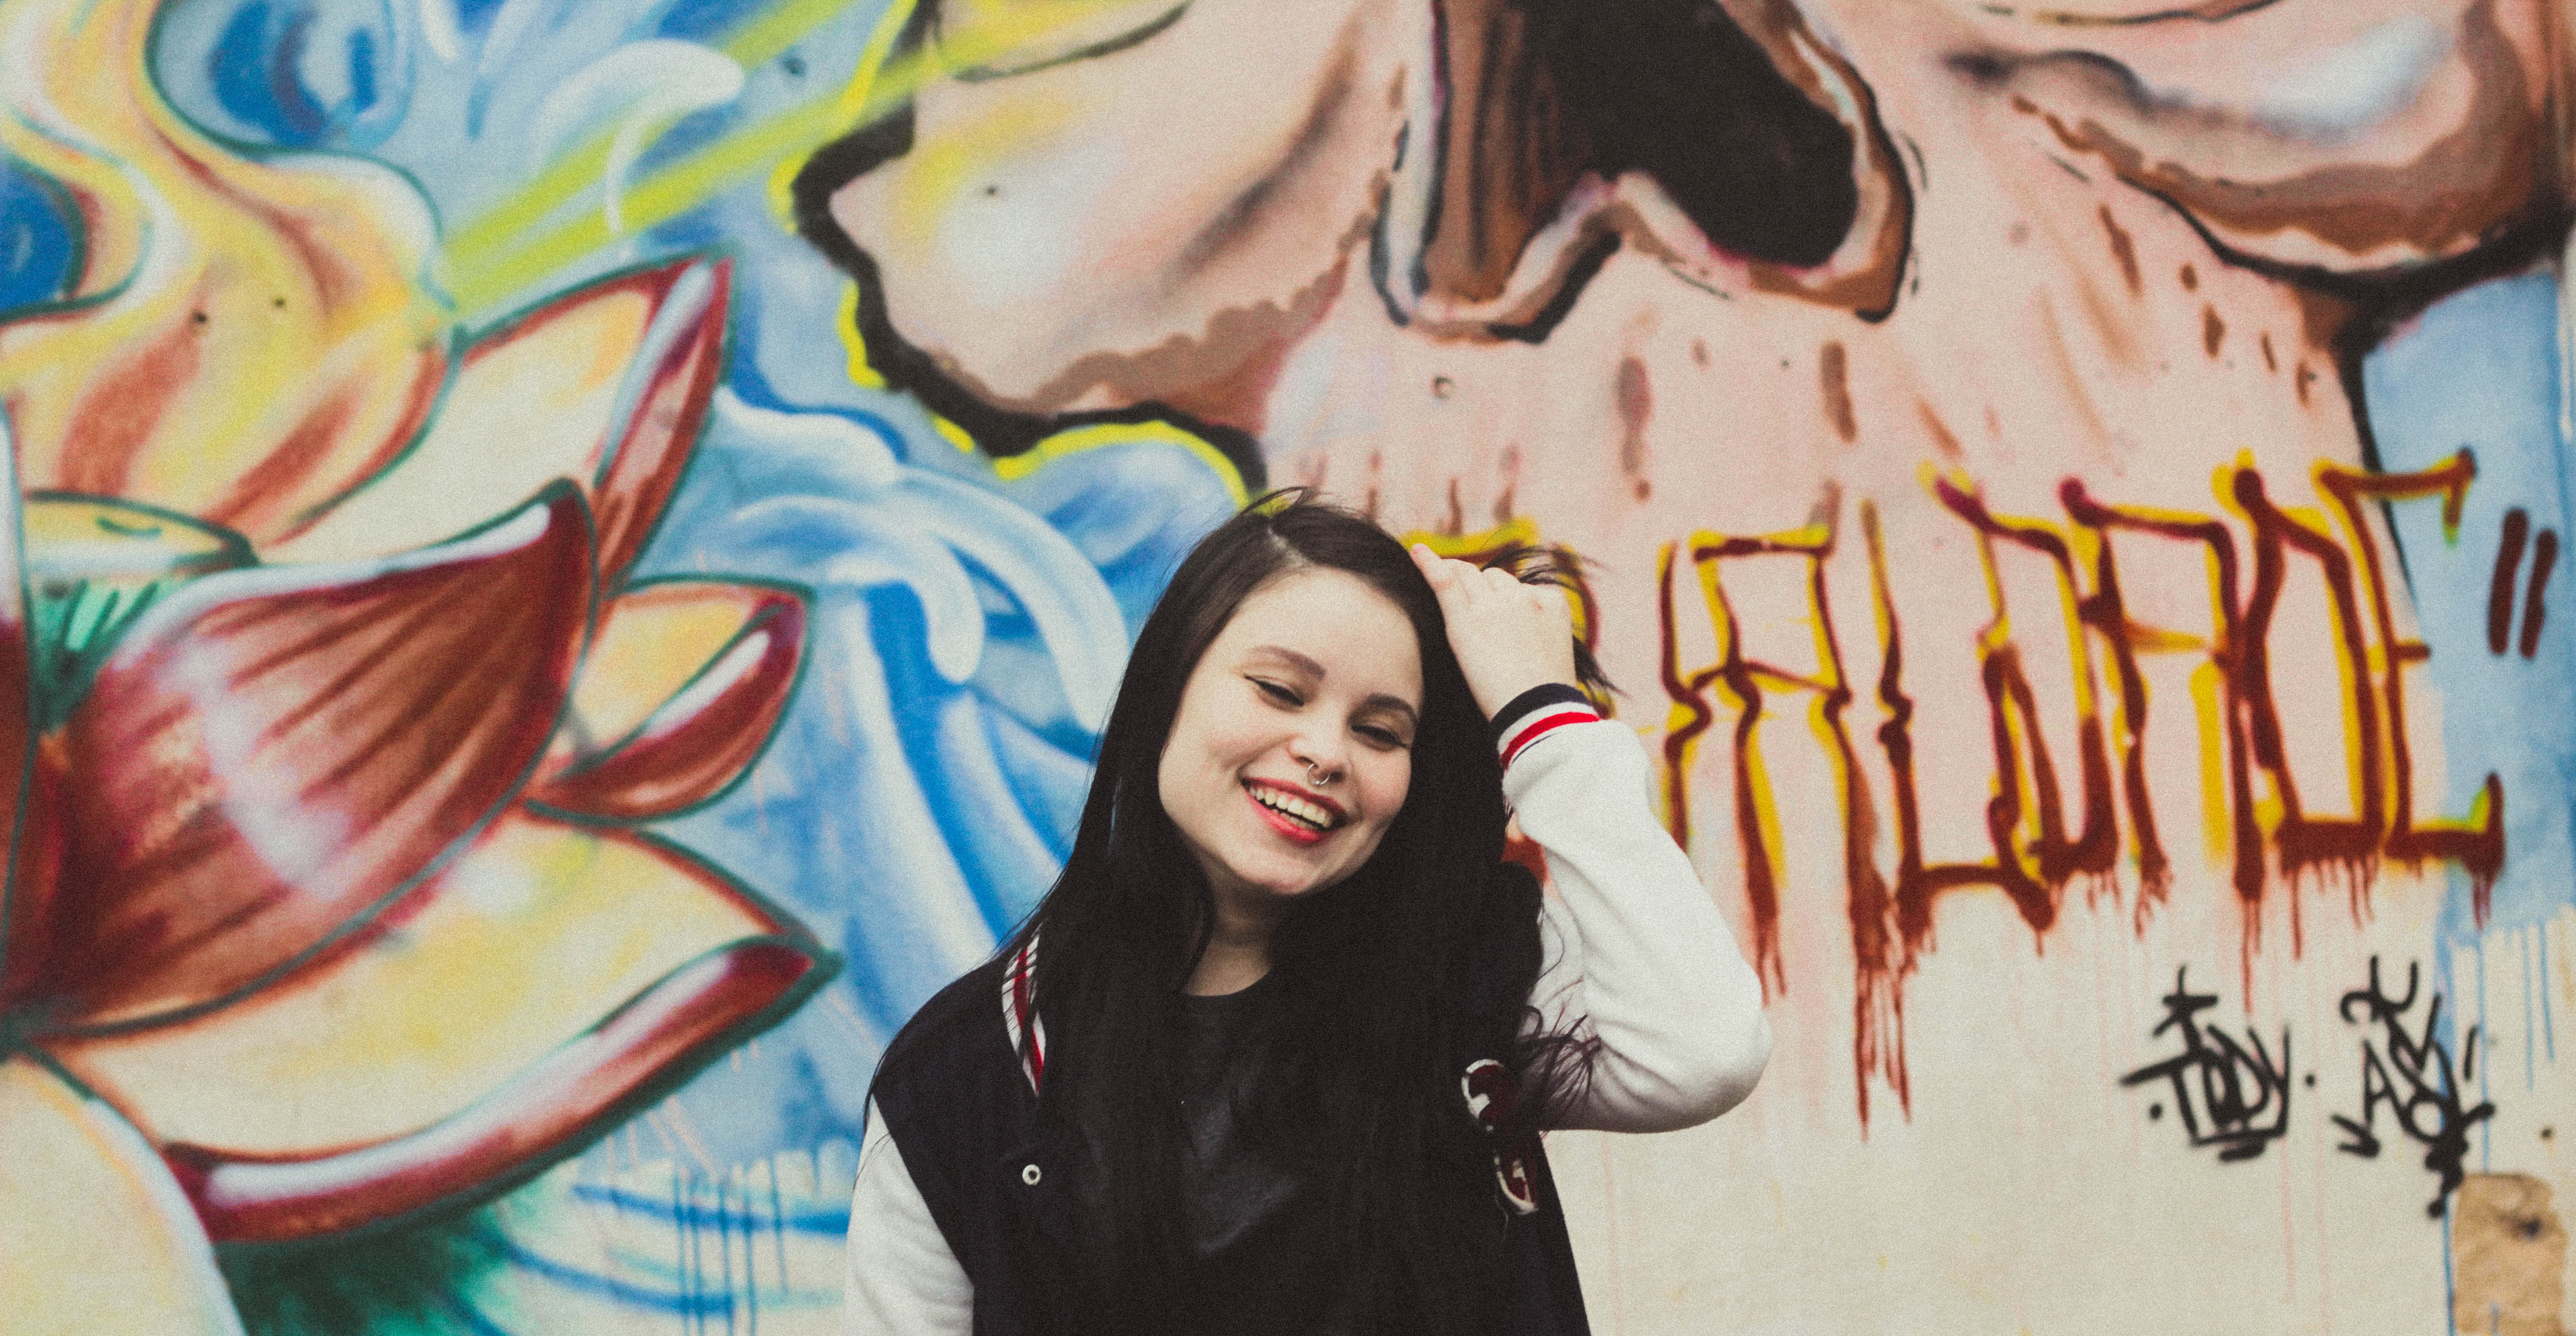 woman wearing black and white letterman jacket standing in front of mural painting